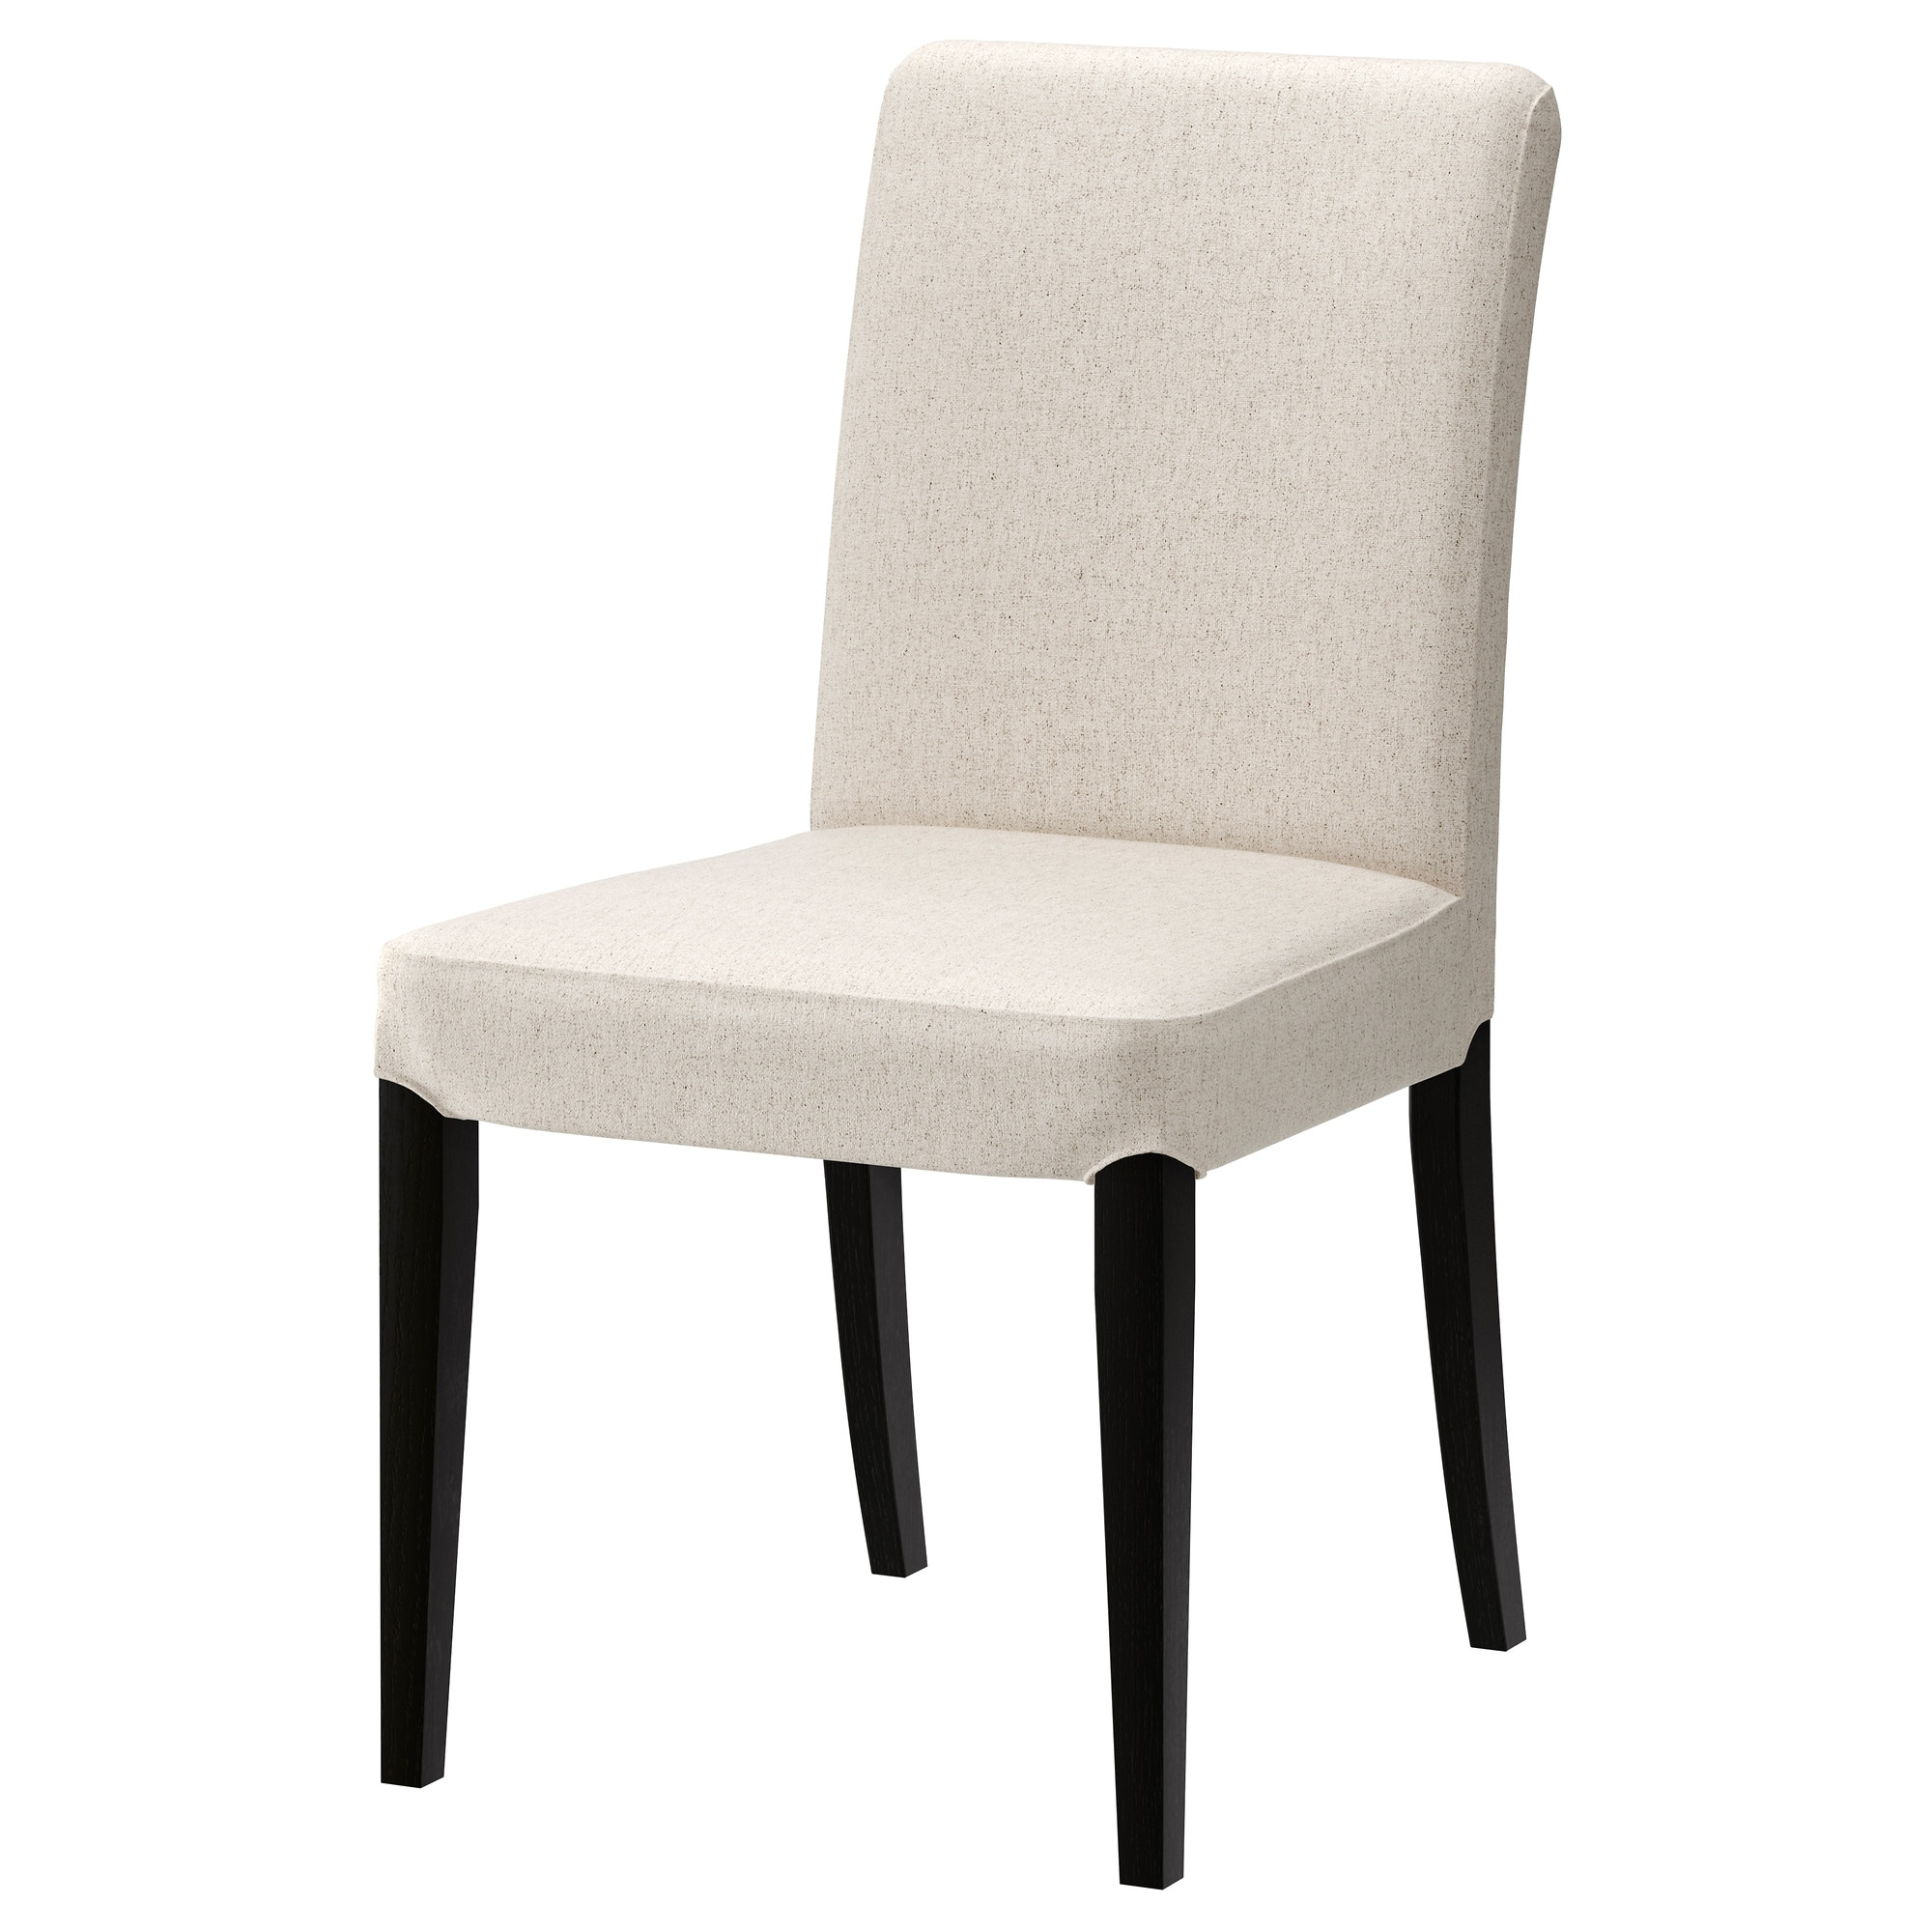 Ikea Leather Dining Room Chairs Best Home Design 2018